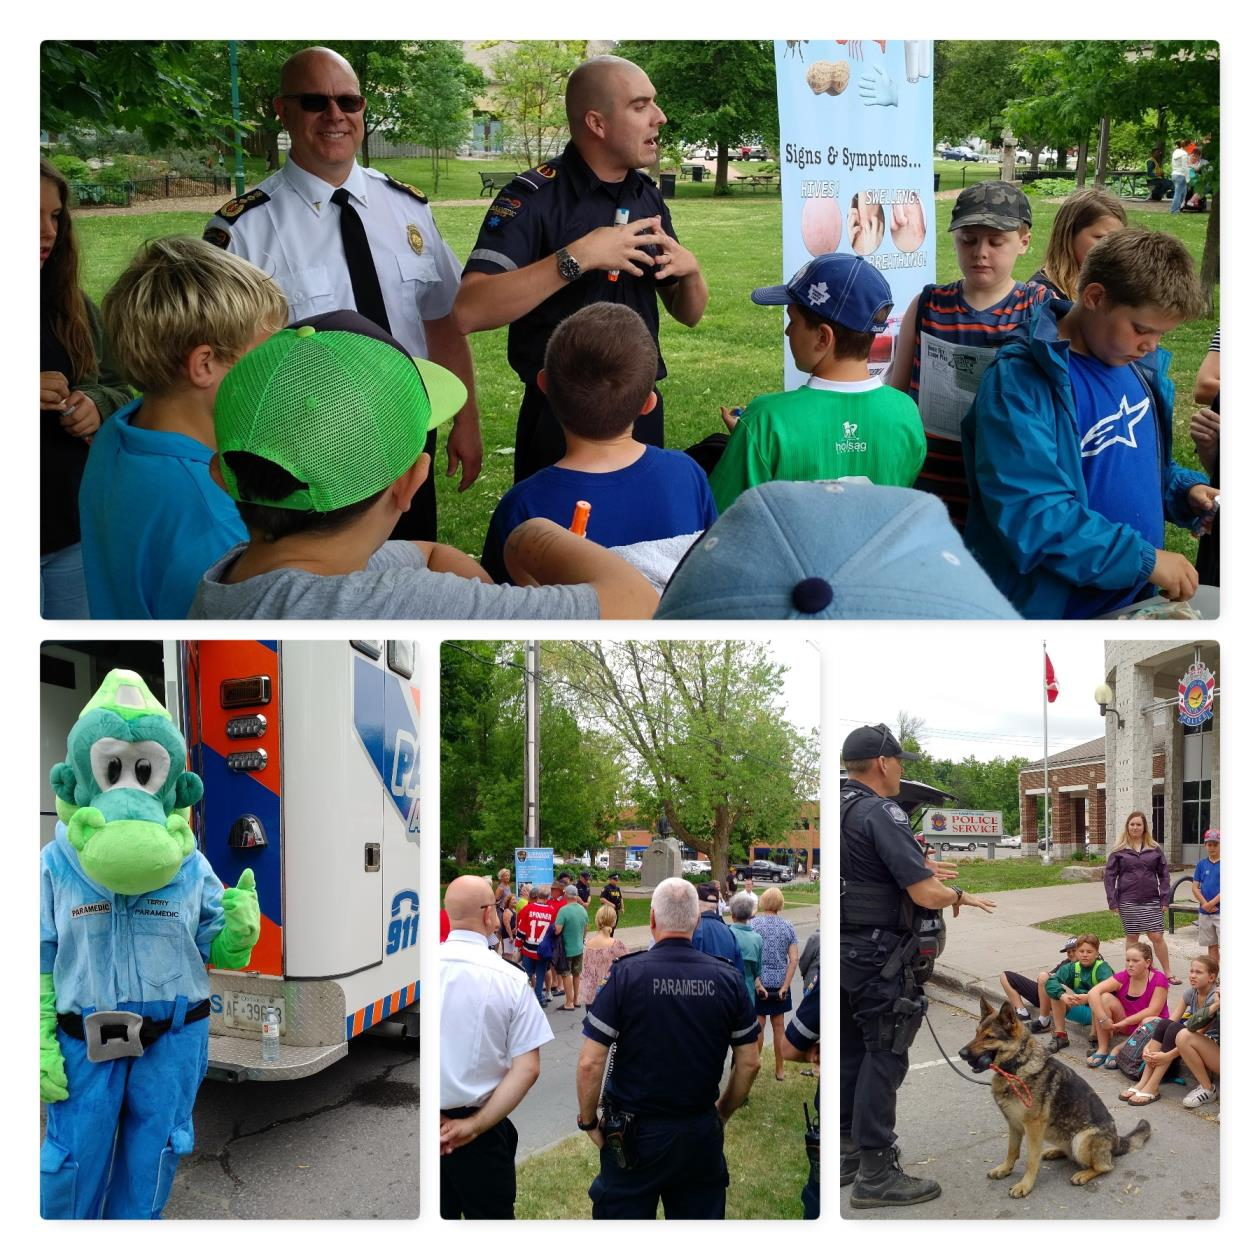 Paramedics in the Park teaches, and reaches out to students, public